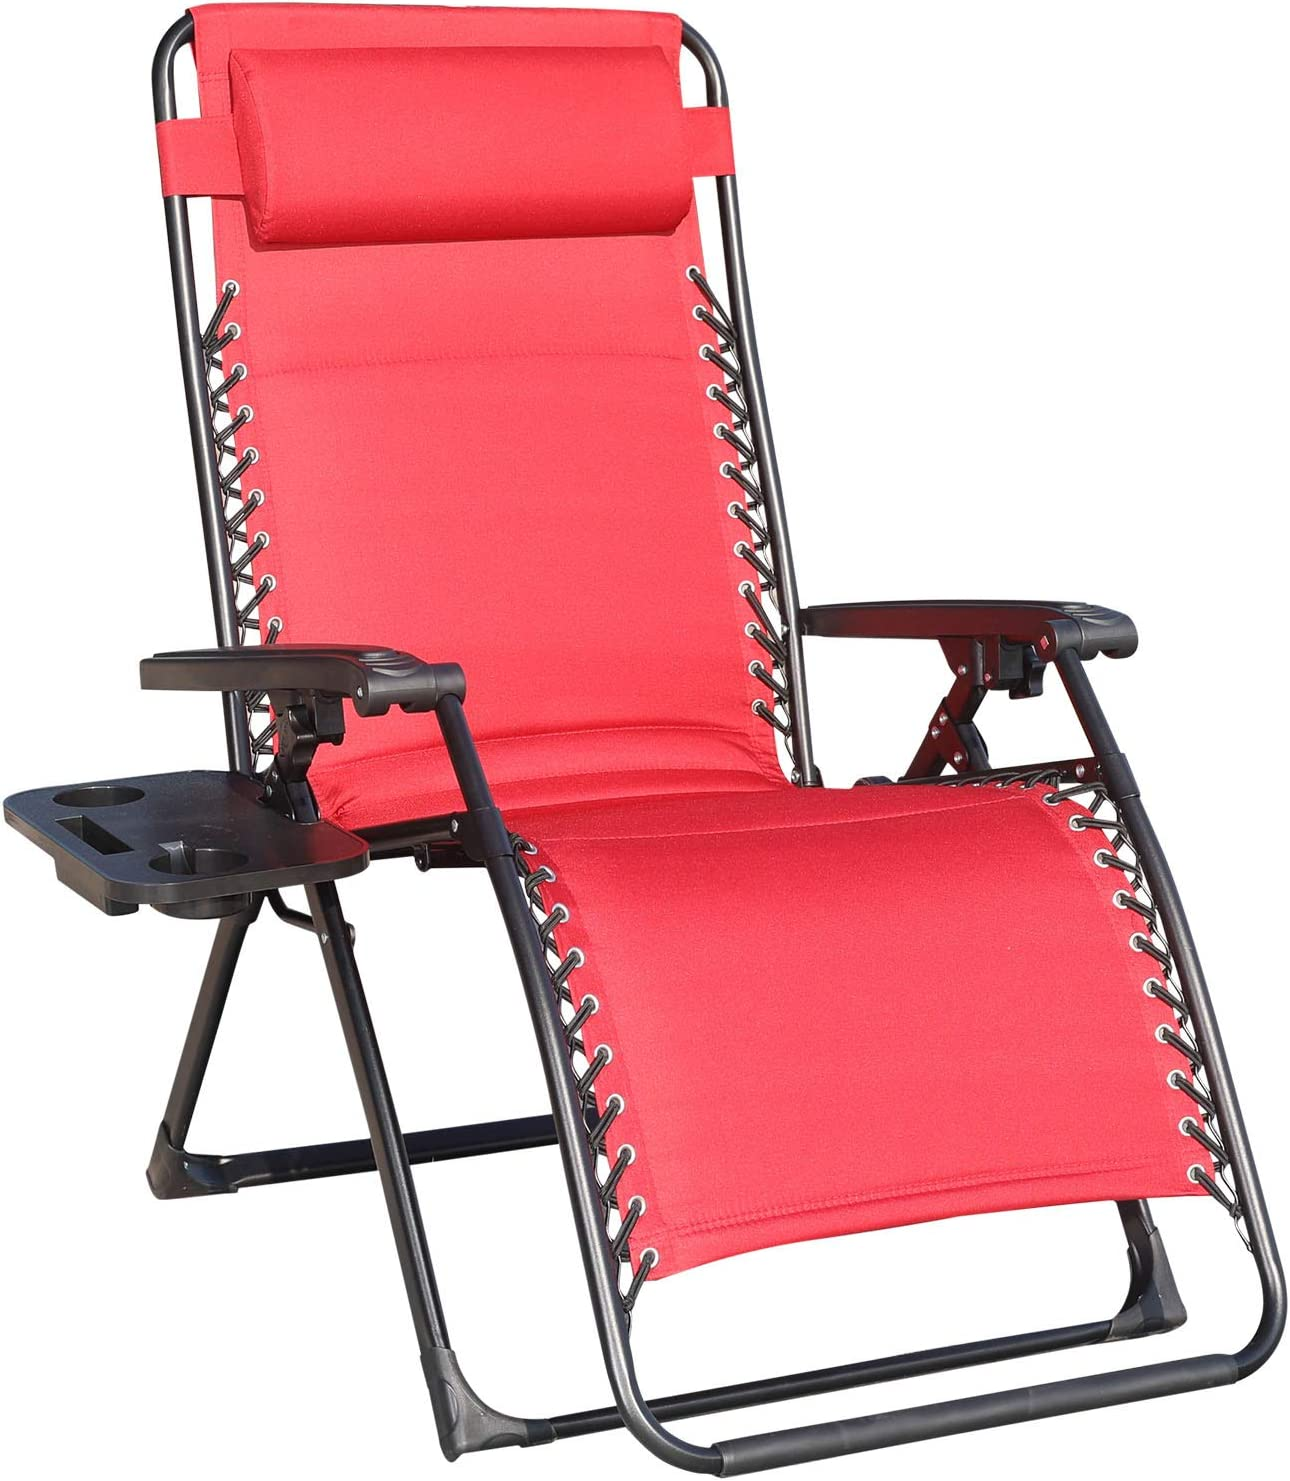 Best Reclining Patio Chairs (2020): Top 10 Ever 1